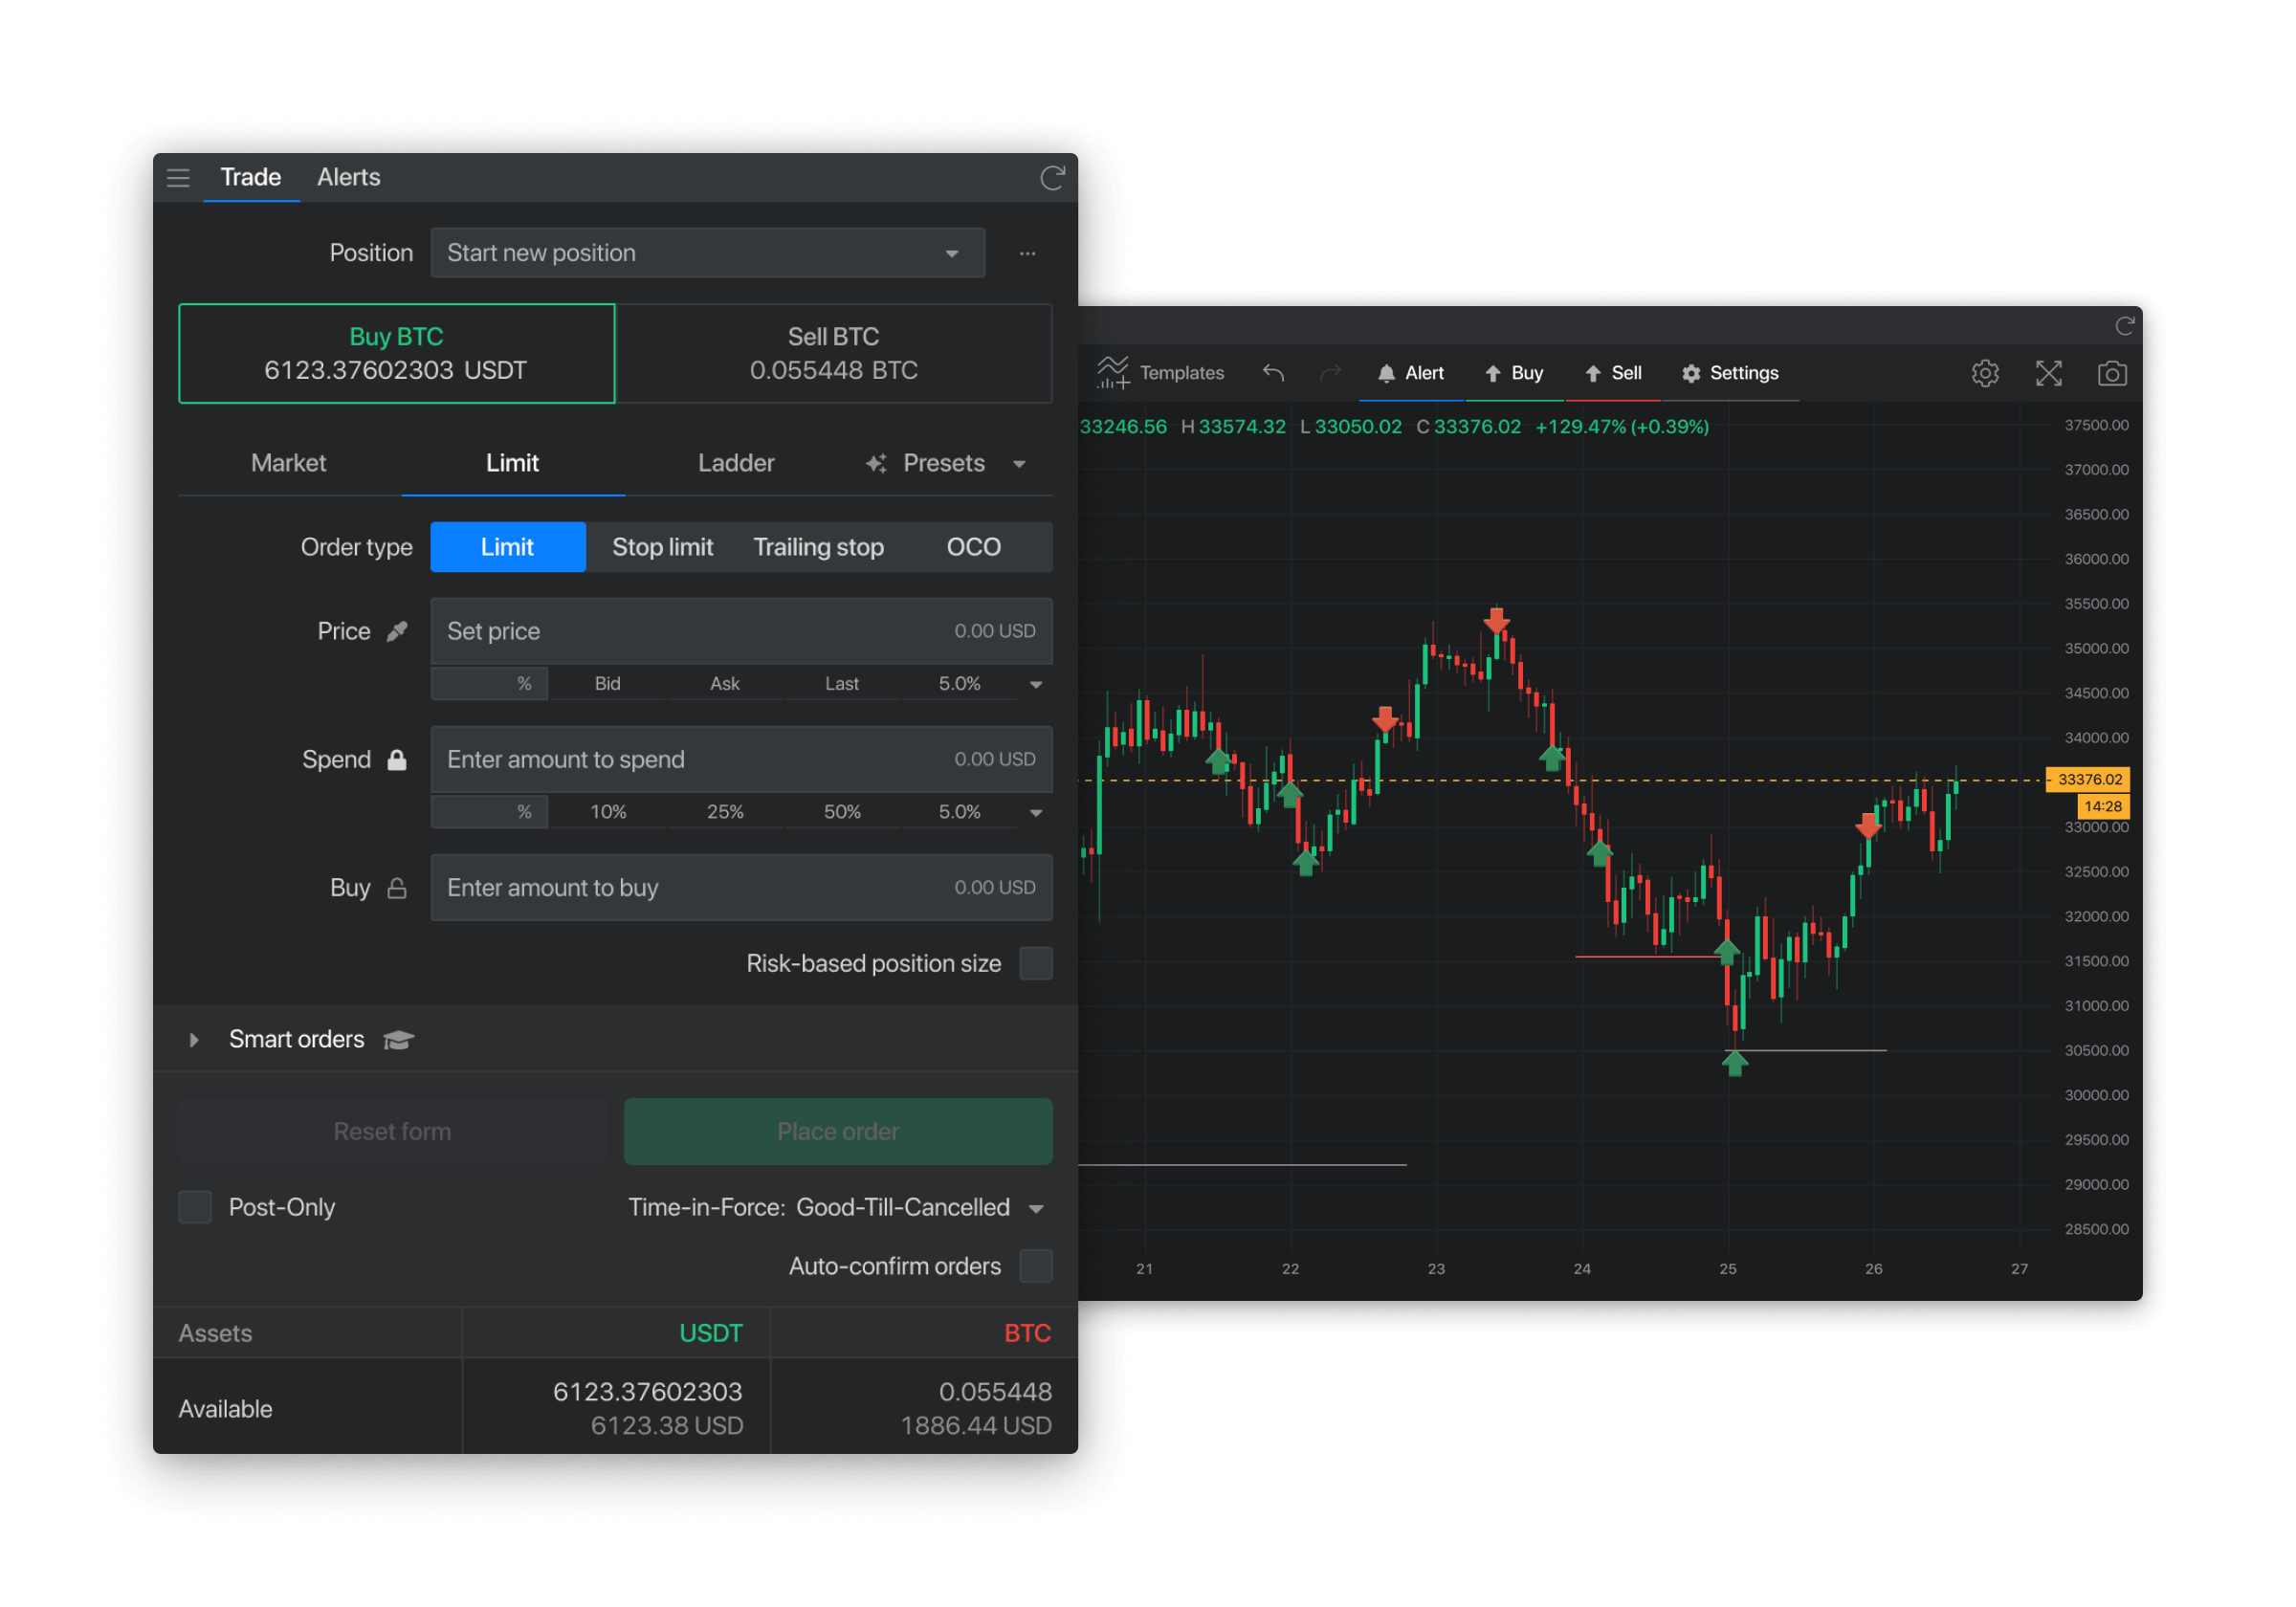 Trading features